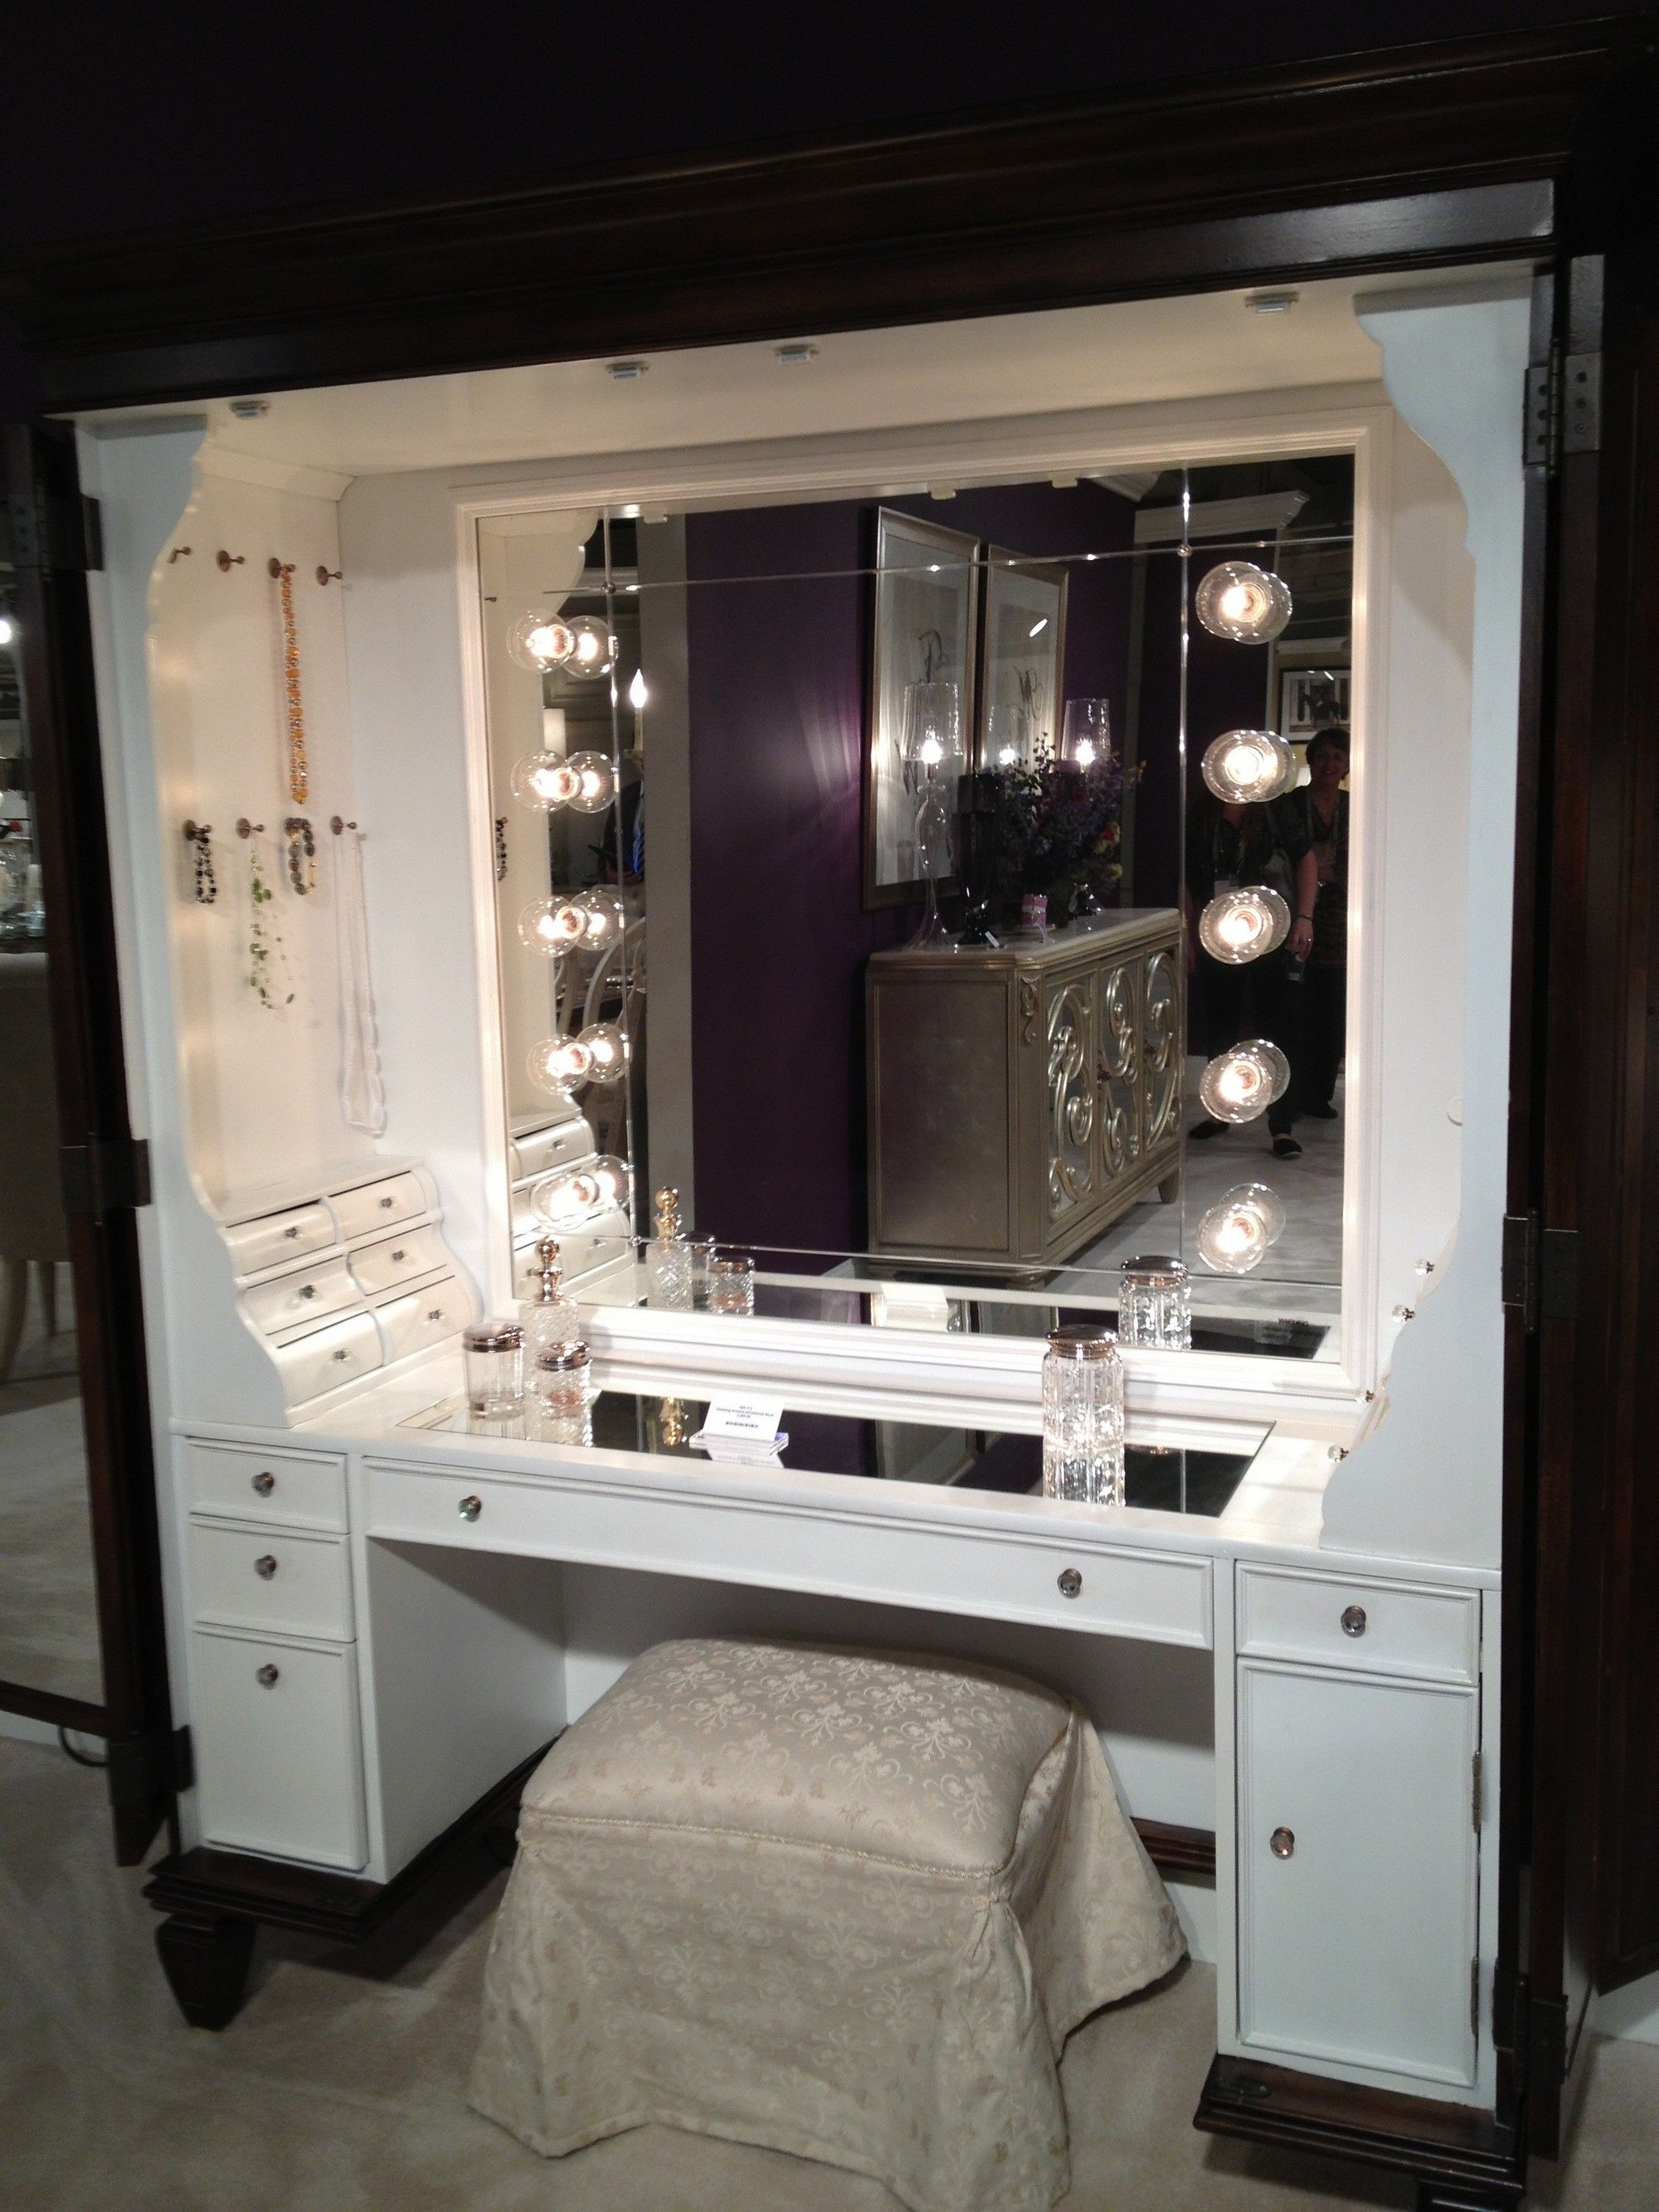 Makeup vanity for bathroom - Furniture Black Makeup Table With Lighted Mirror And Small Fabric Bench Show Perfect Beauty